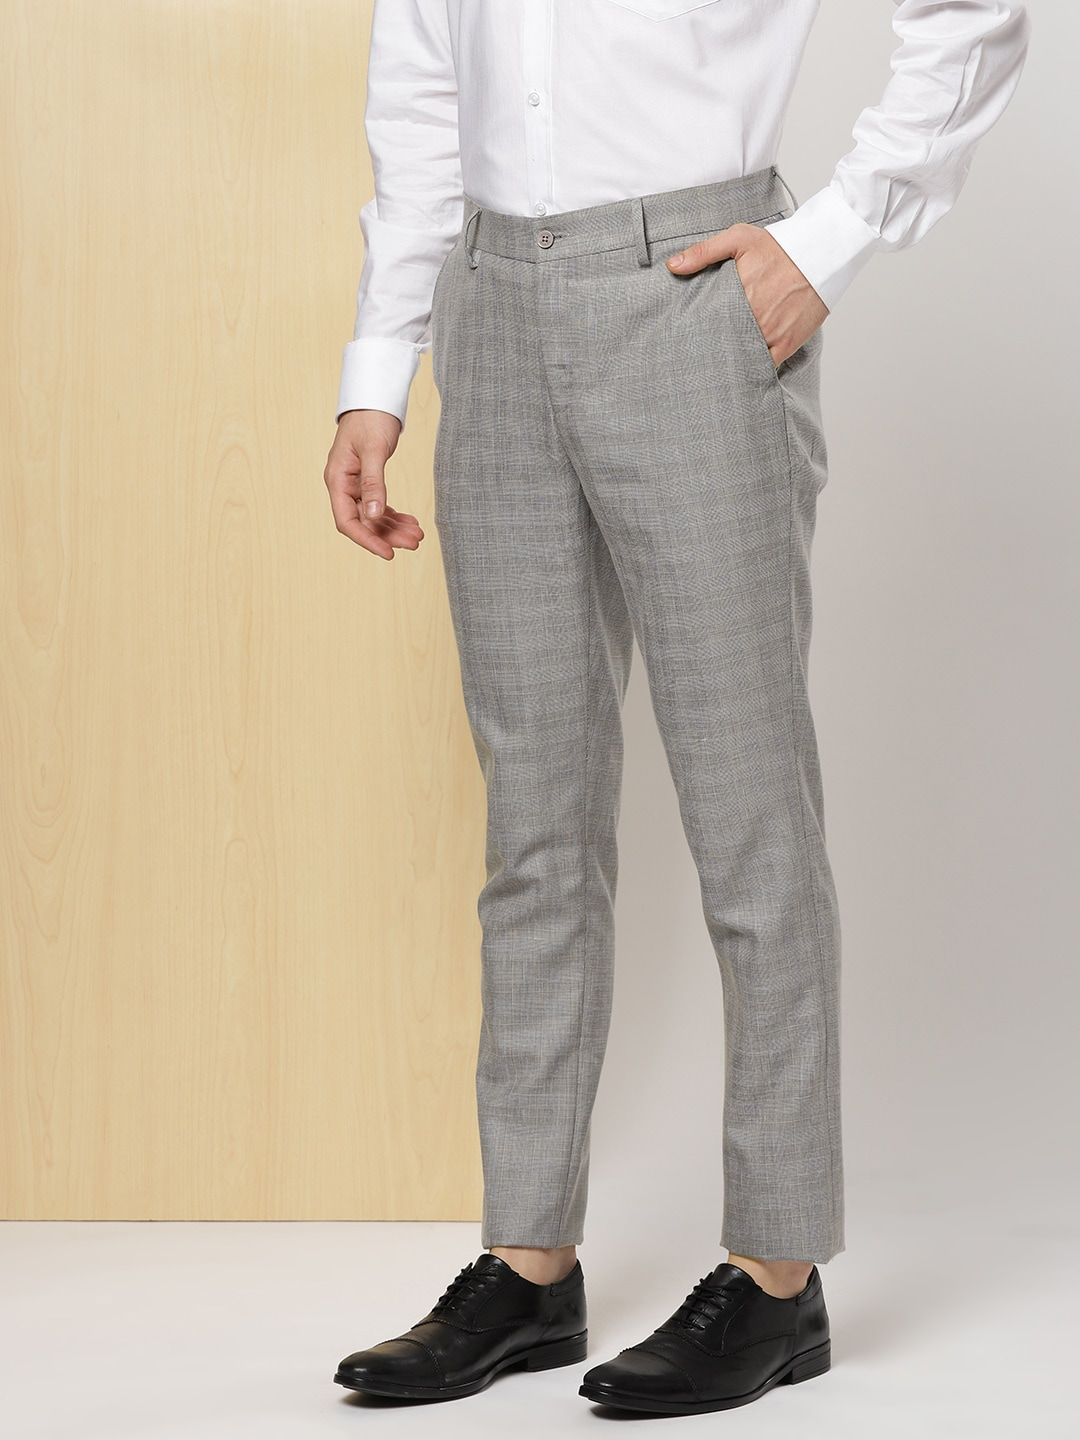 2ebdd74f3ad Checked Trousers - Buy Checked Trousers online in India